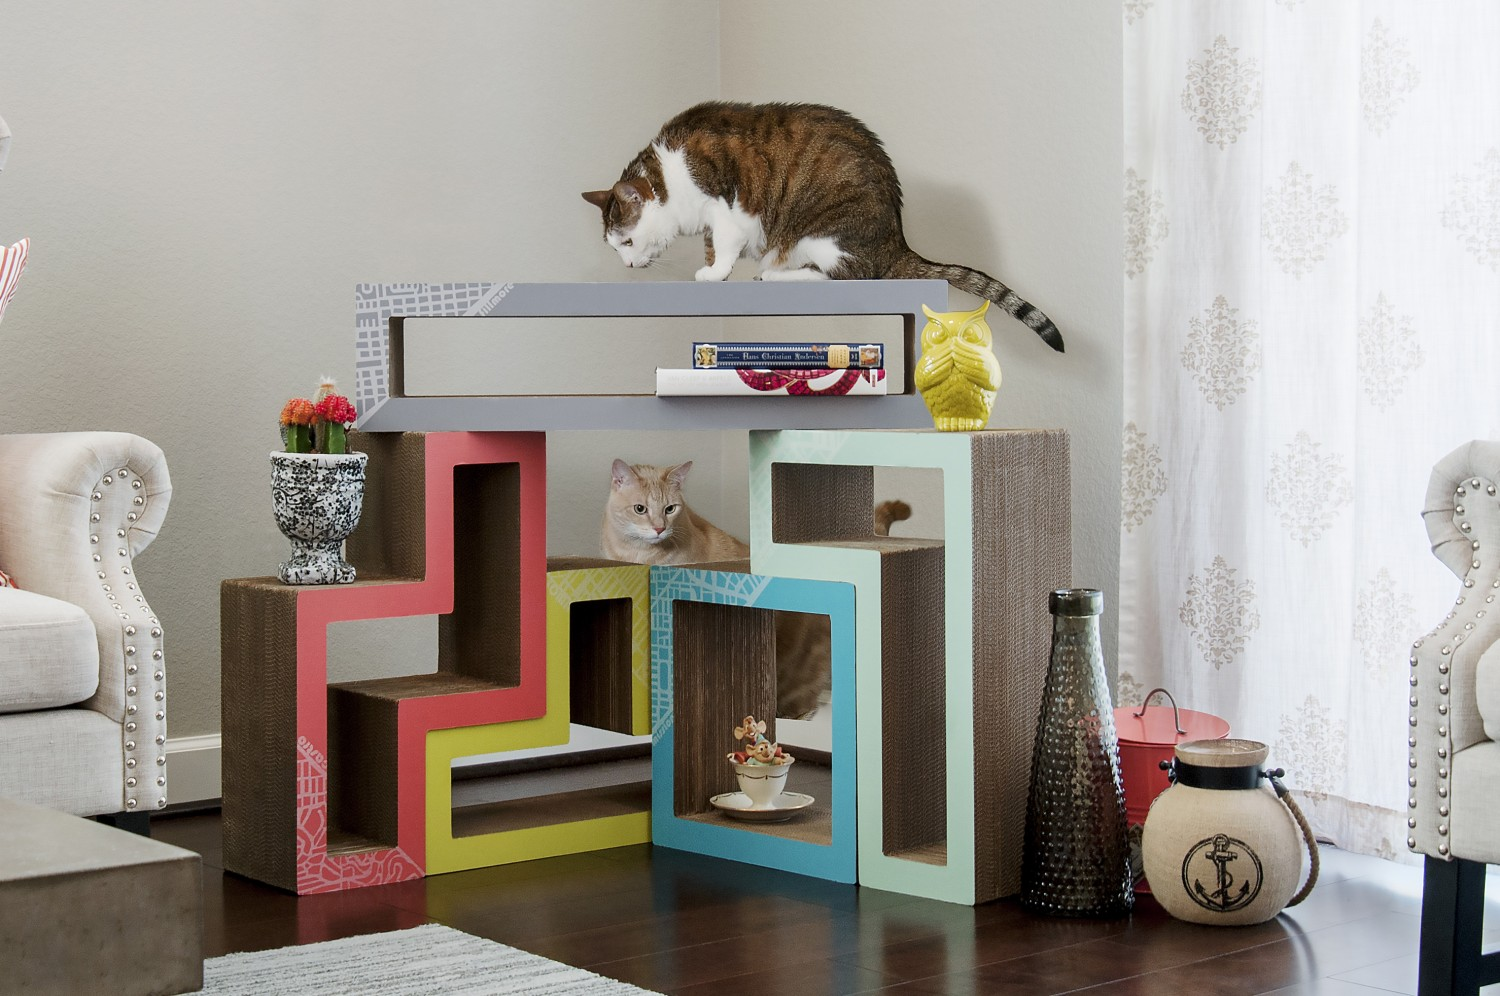 Charmant Katris, Papercut Lab, Tetris Furniture, Cats